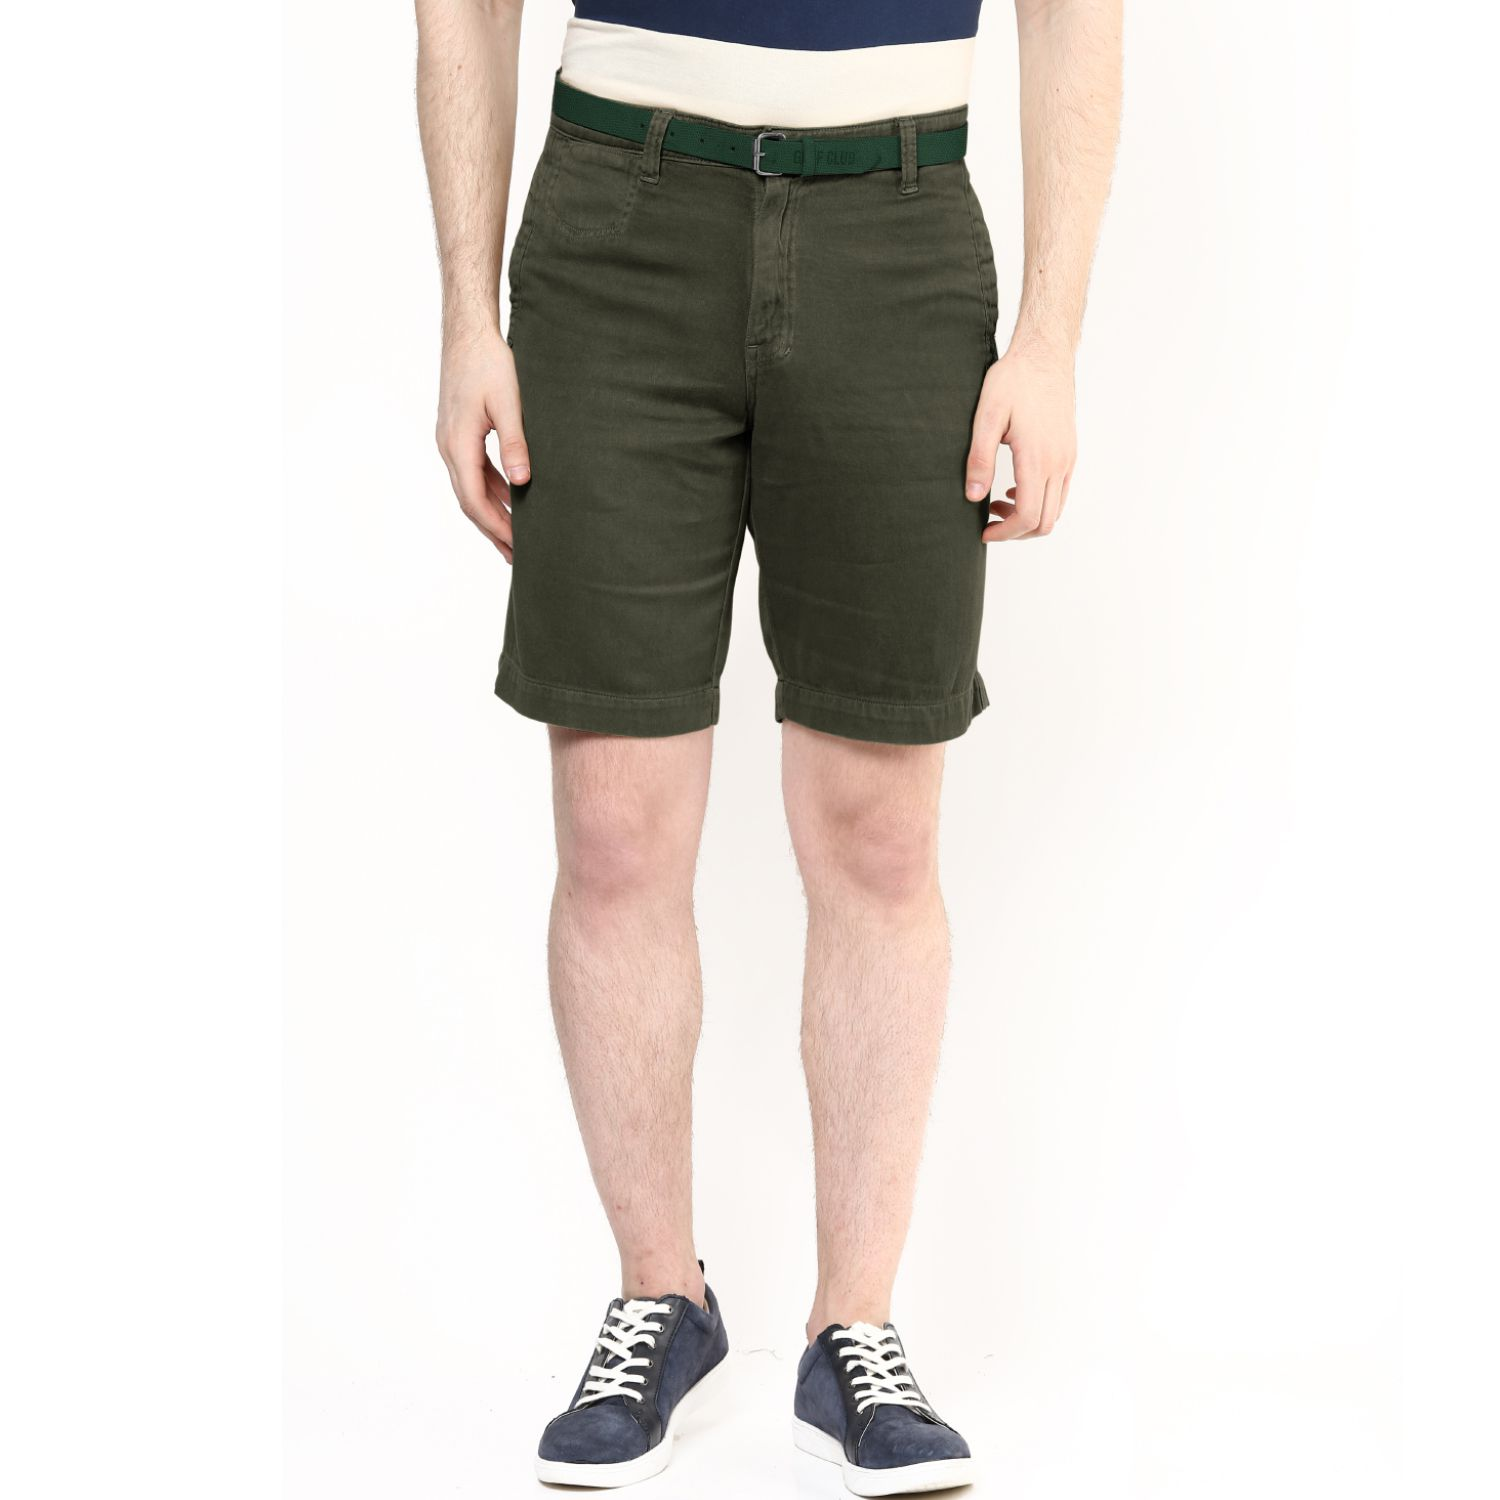 Wear Your Mind Green Shorts